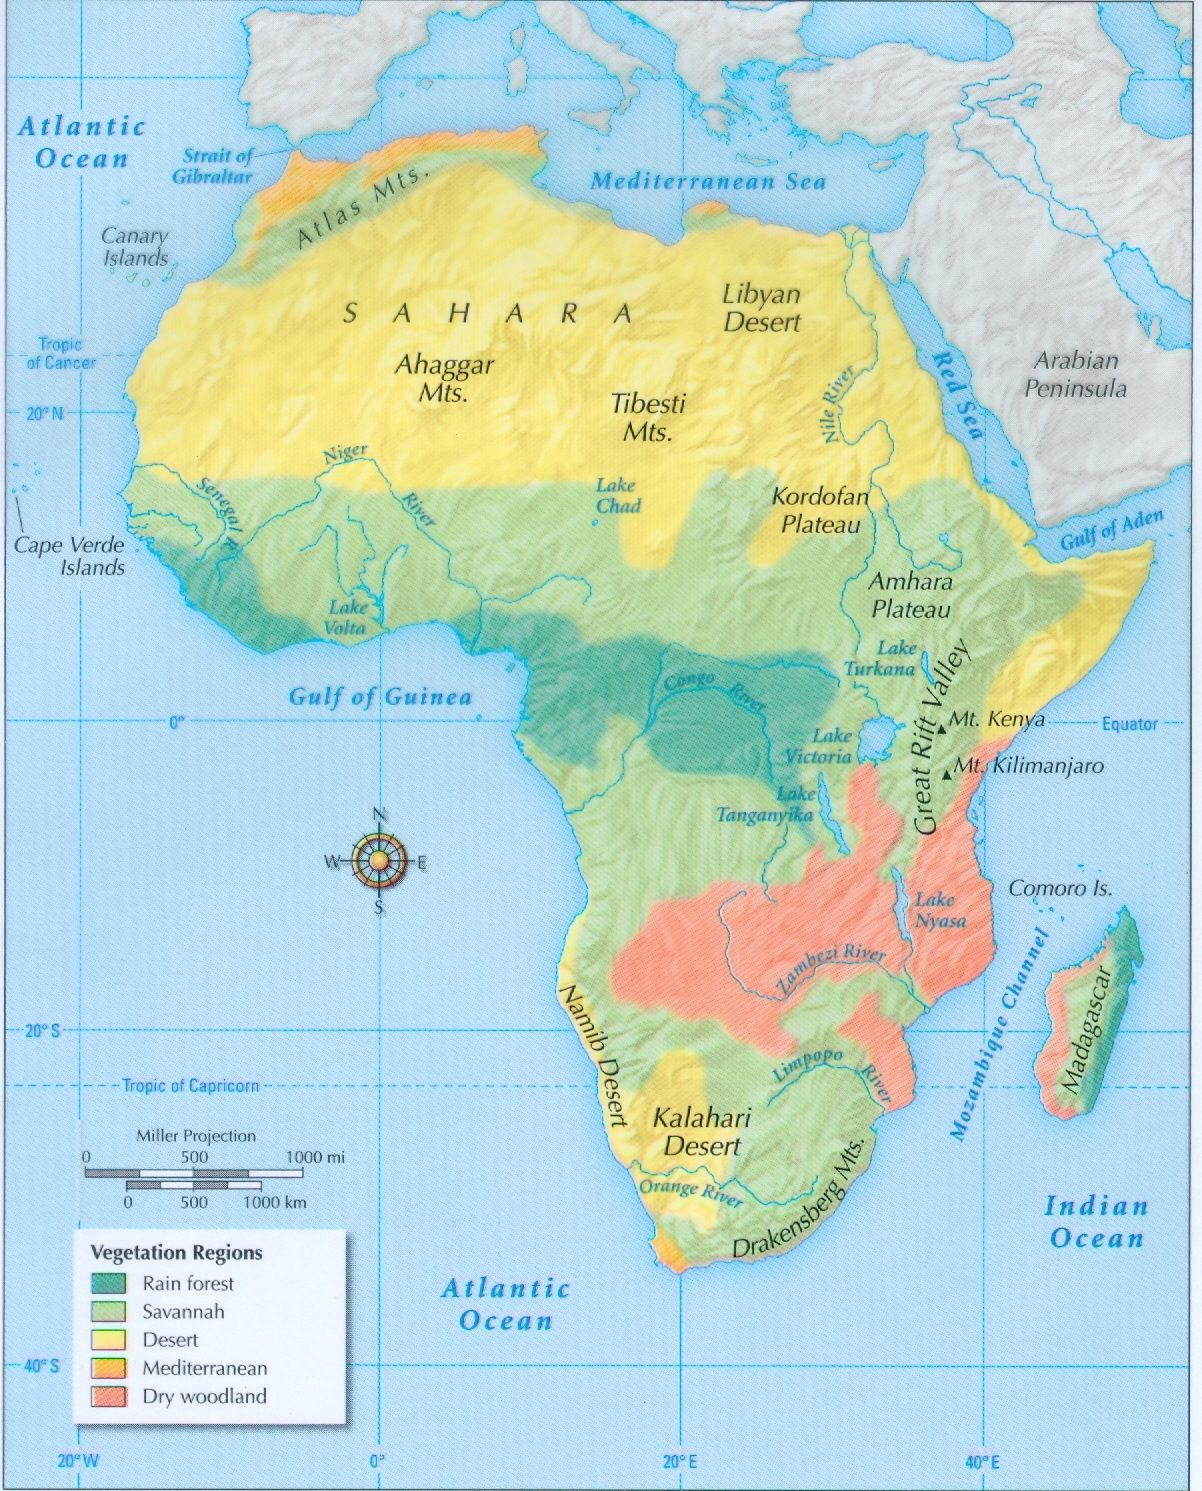 physical regions of africa - Google Search | GEOGRAPHY ...